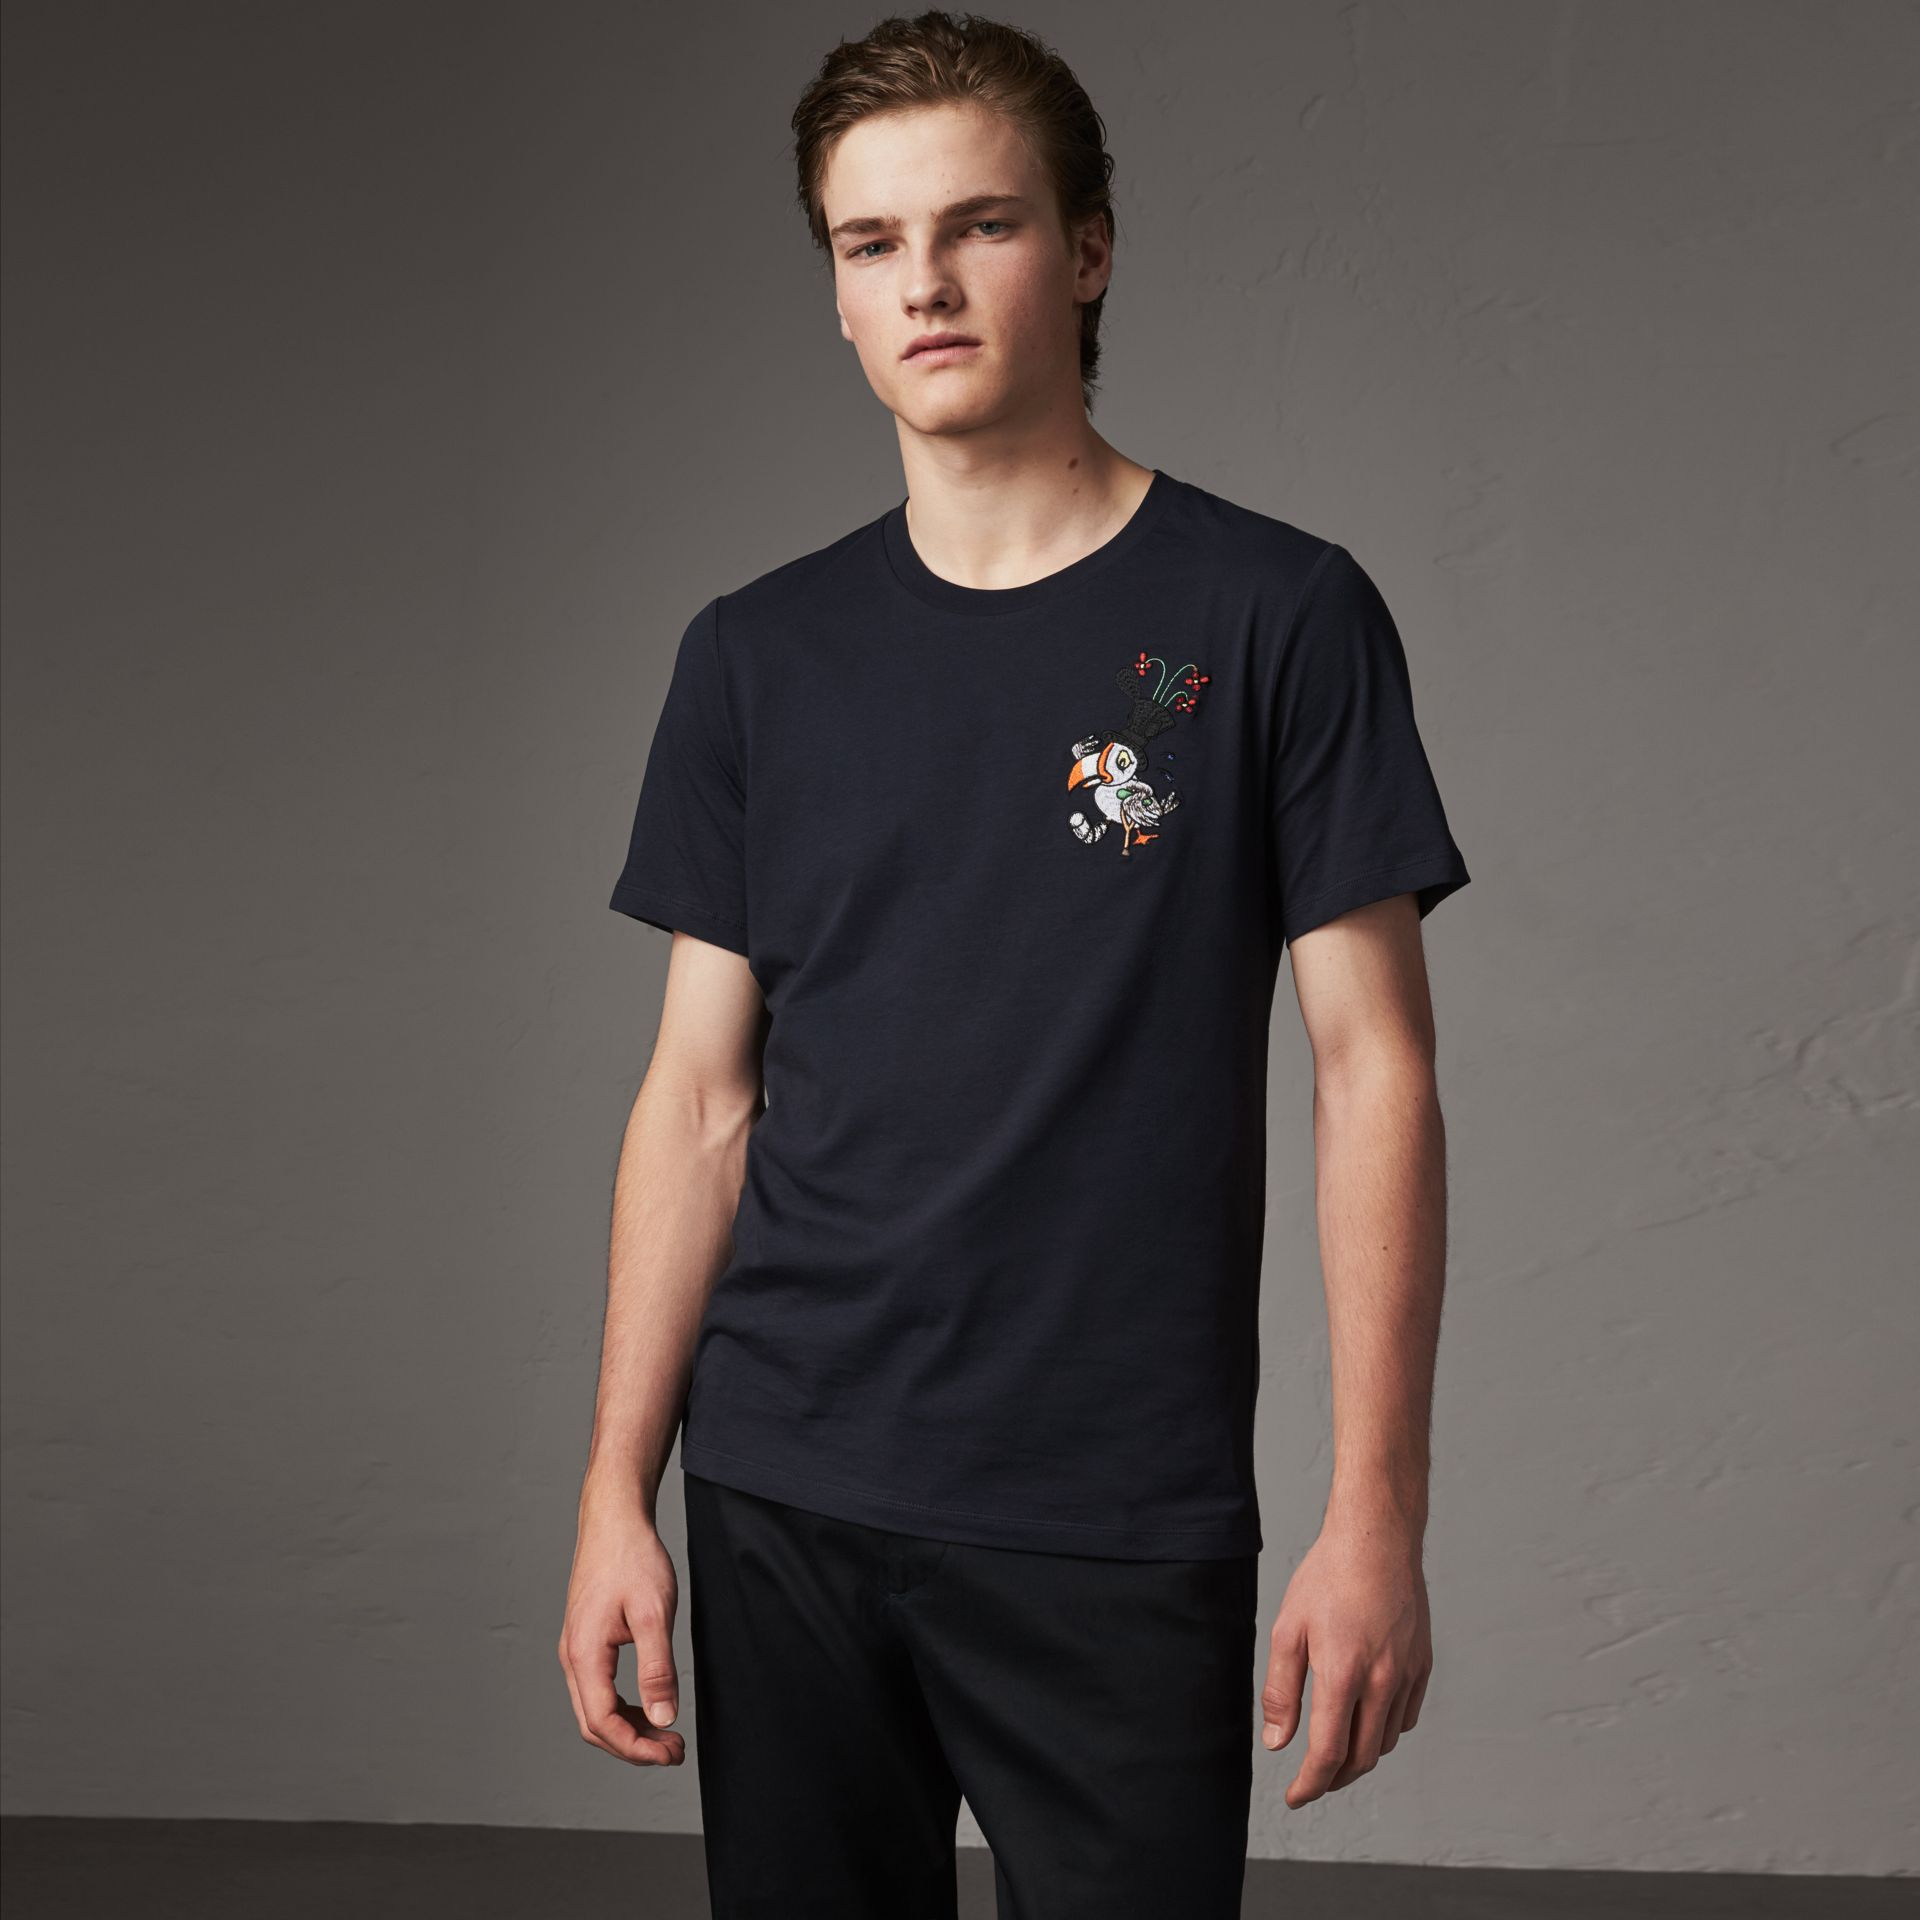 Sketch Appliqué Cotton T-shirt in Navy - Men | Burberry - gallery image 0